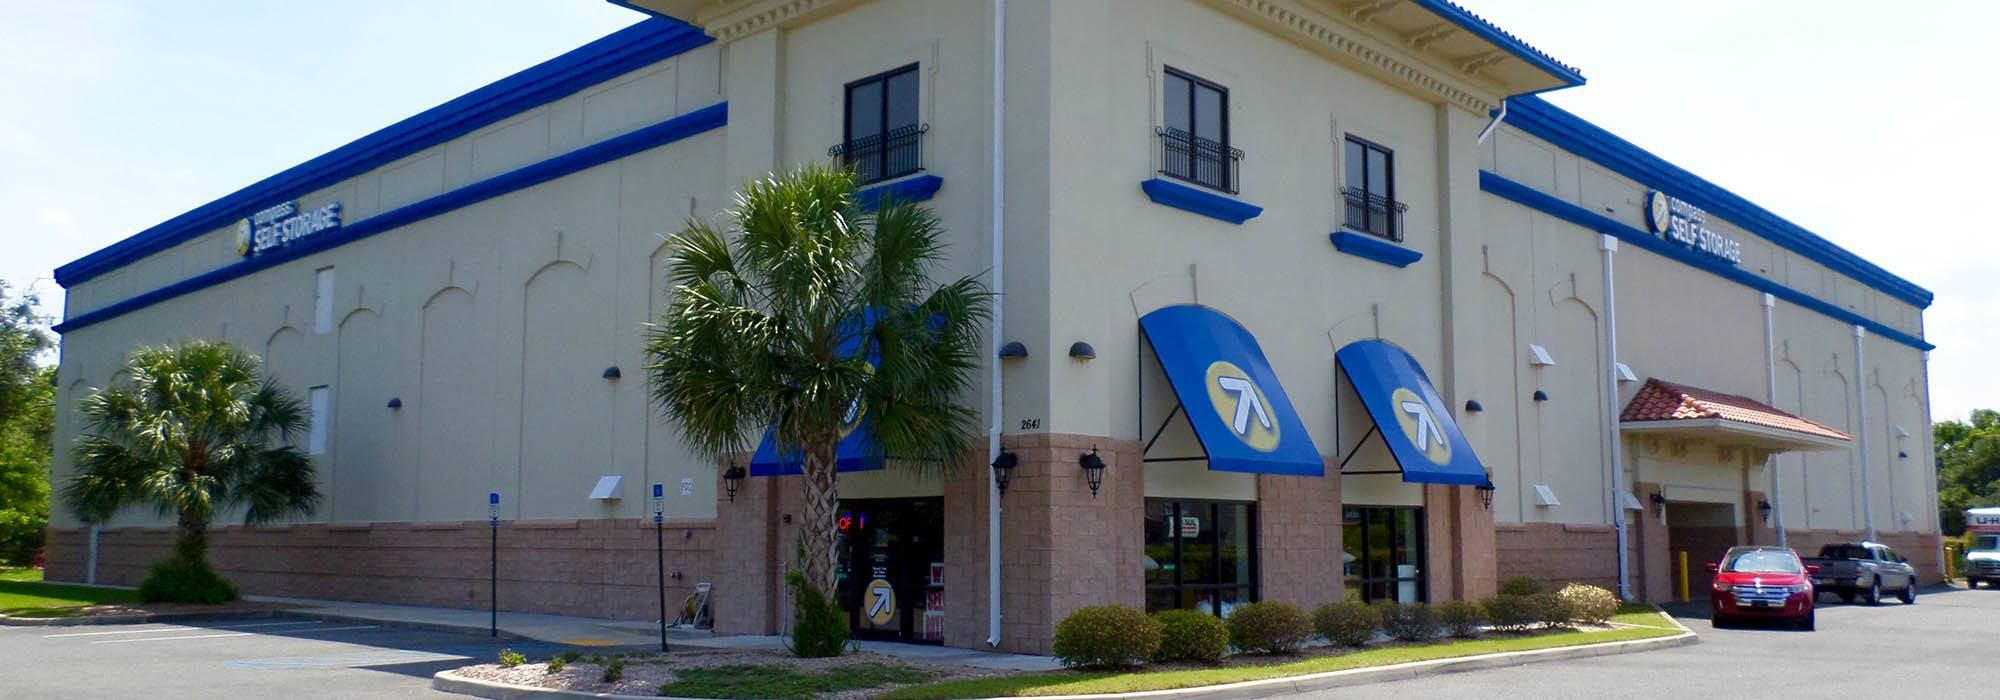 Self storage in Fernandina Beach FL